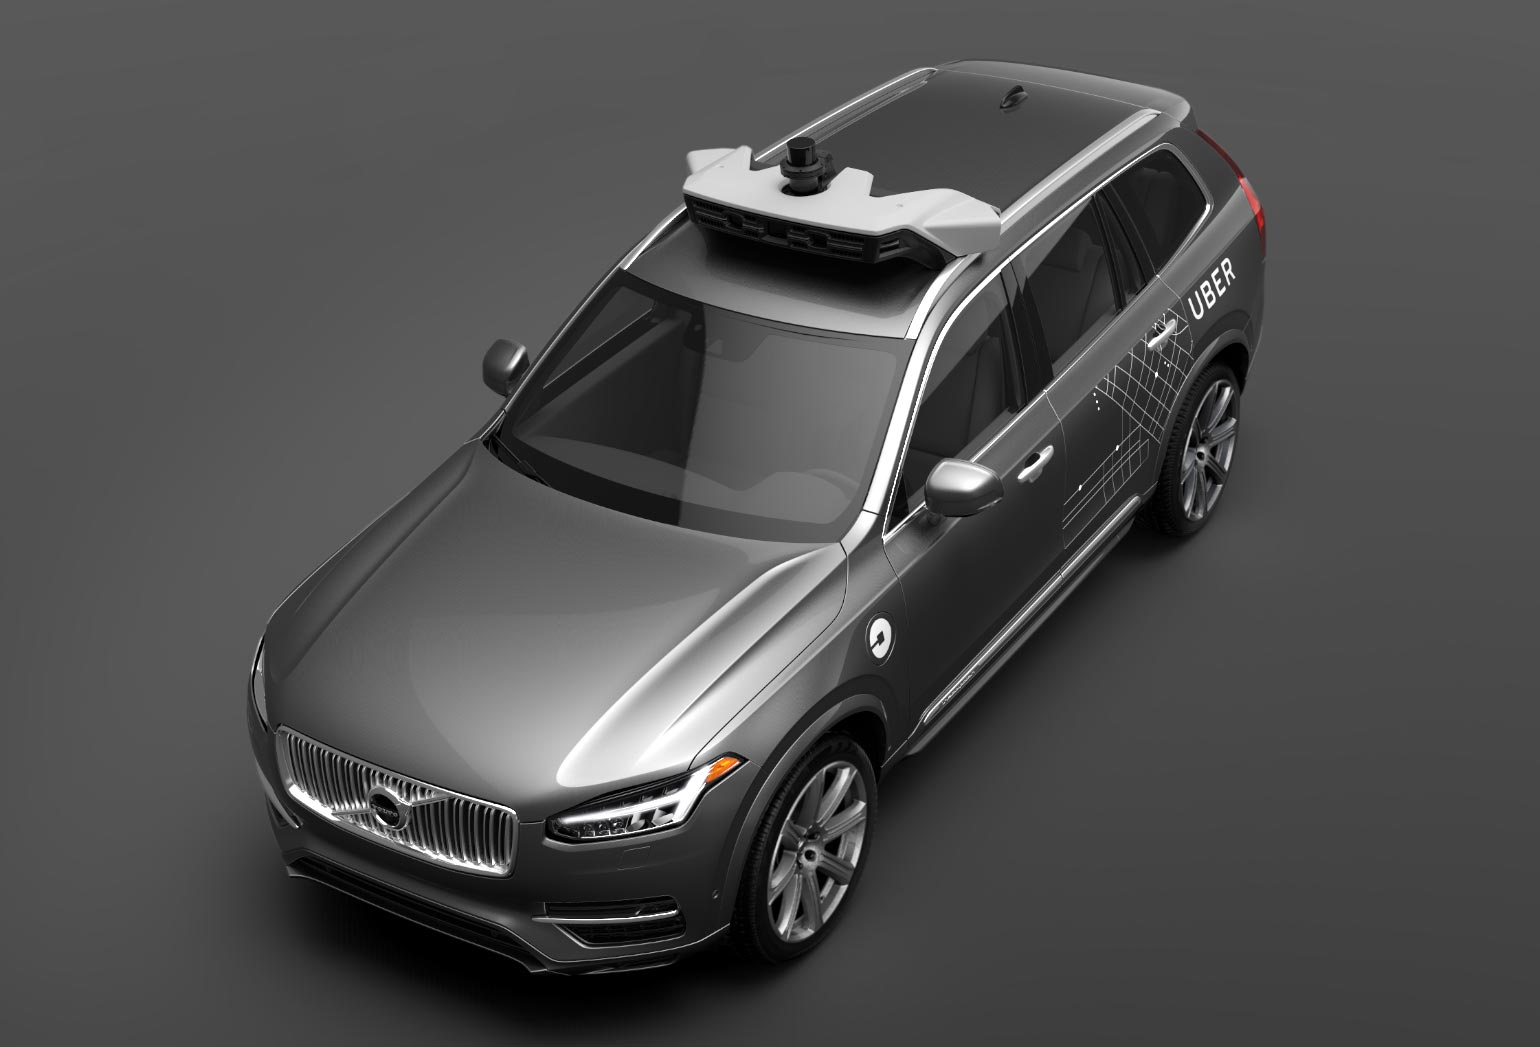 Volvo is expected to deliver a total of 100 specially modified SUVs to Uber by the end of the year.